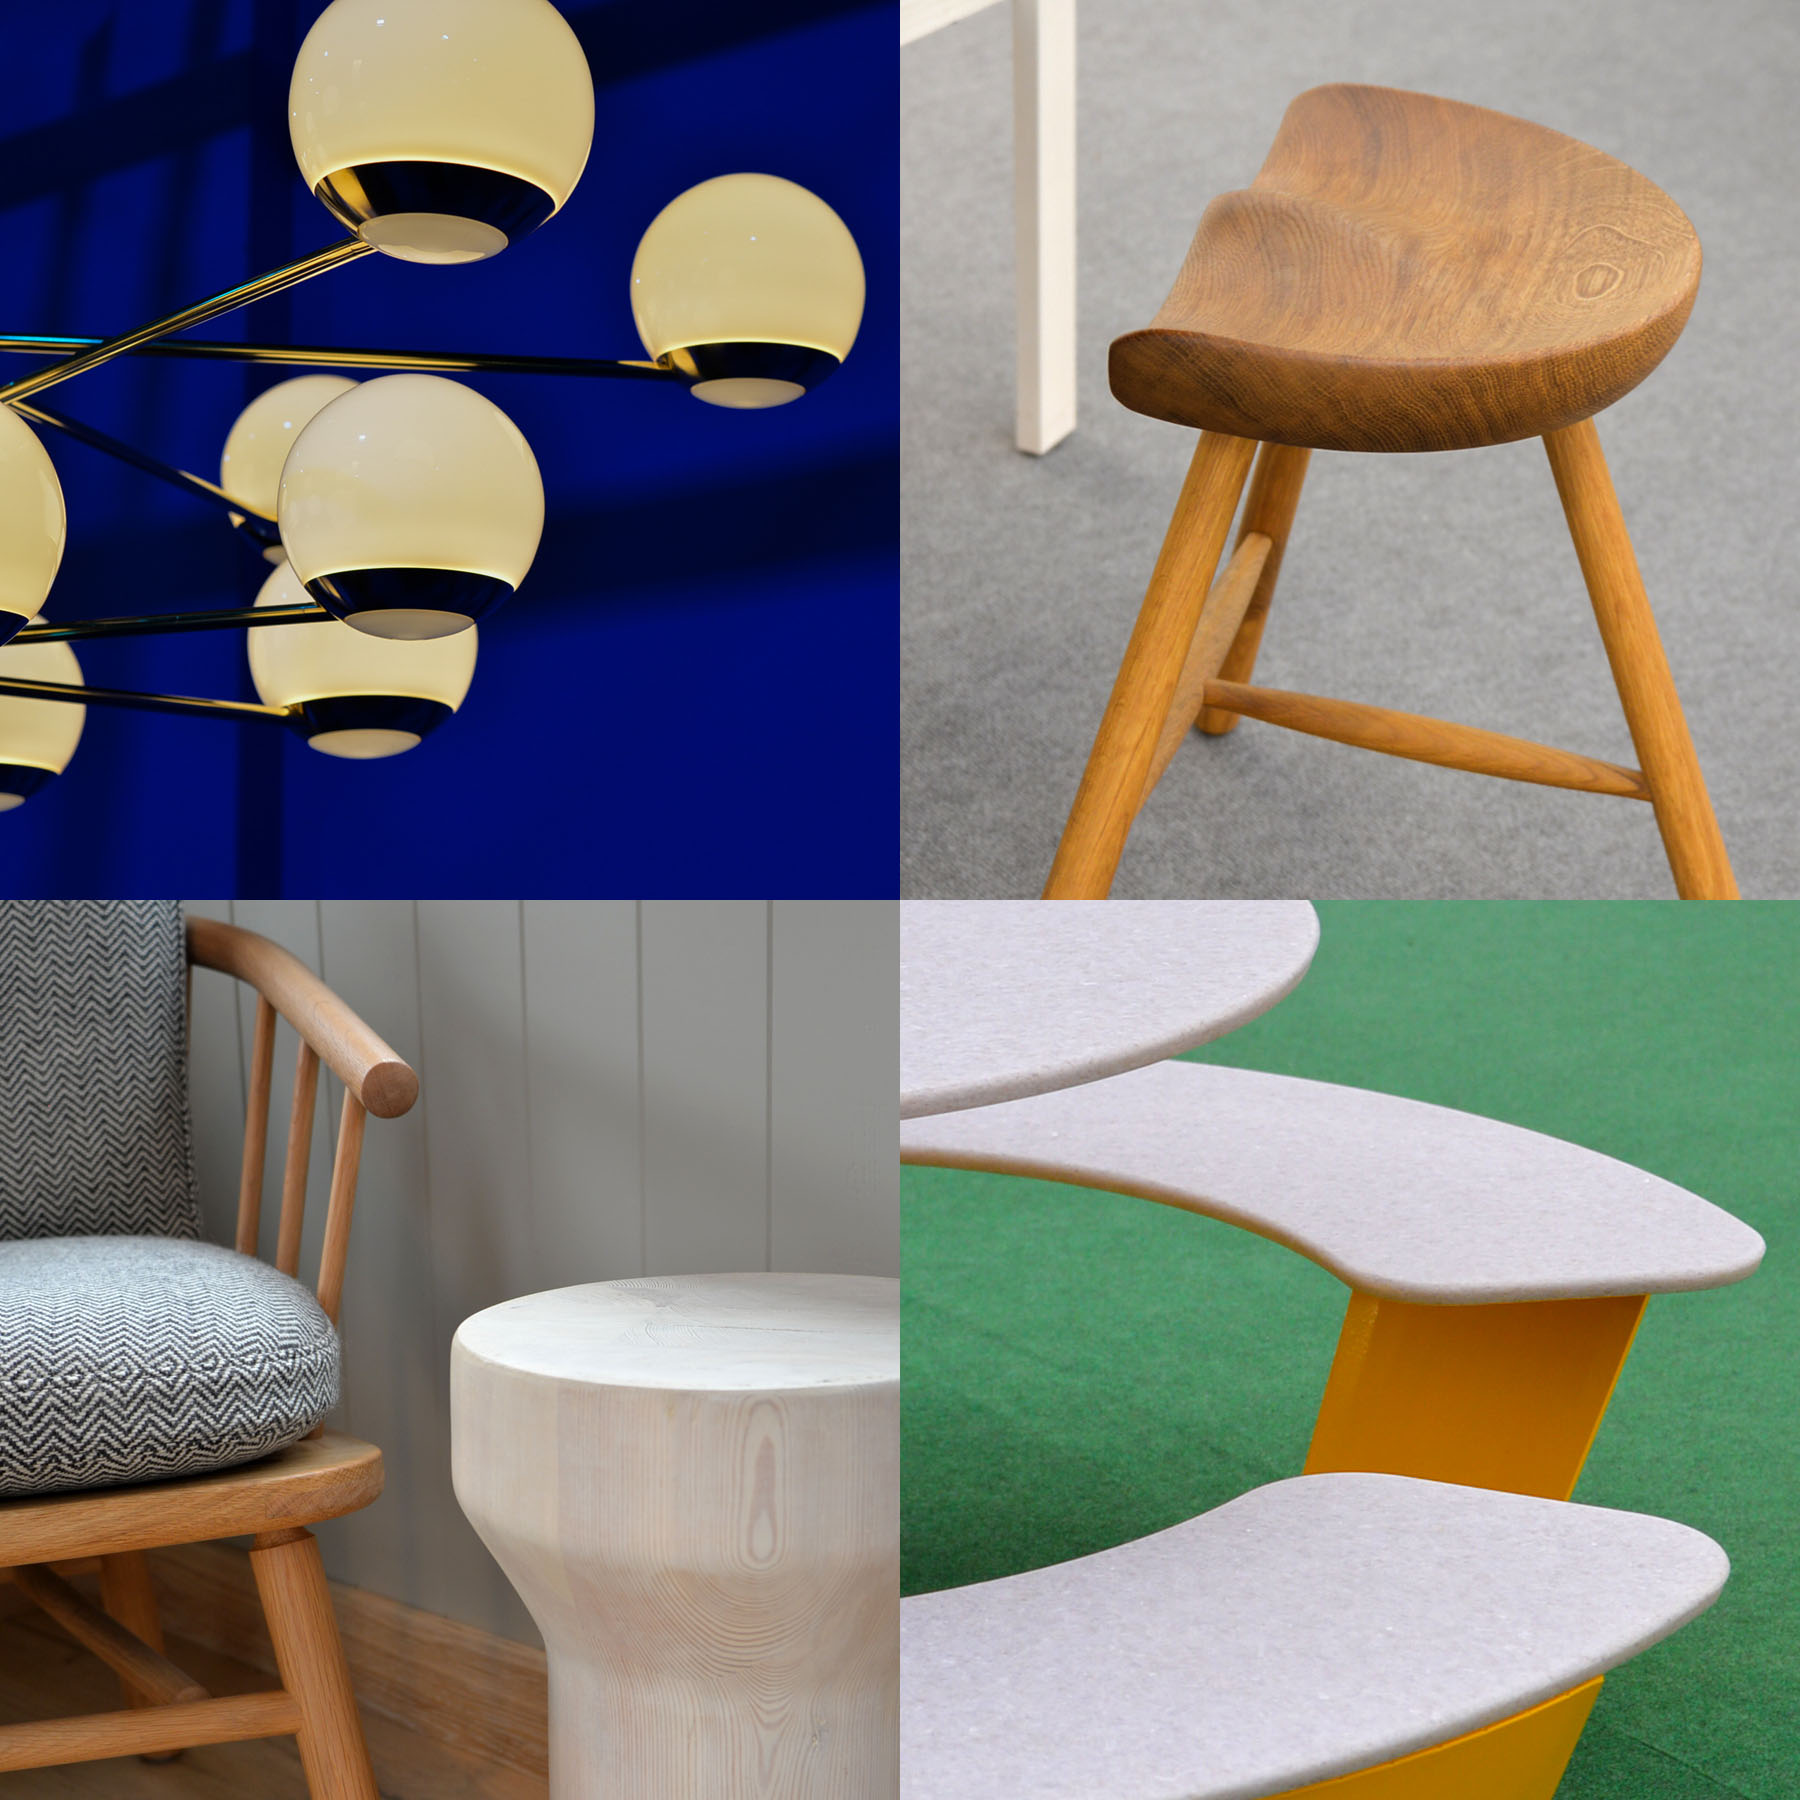 A selection of images from Planted and London Design 2021.